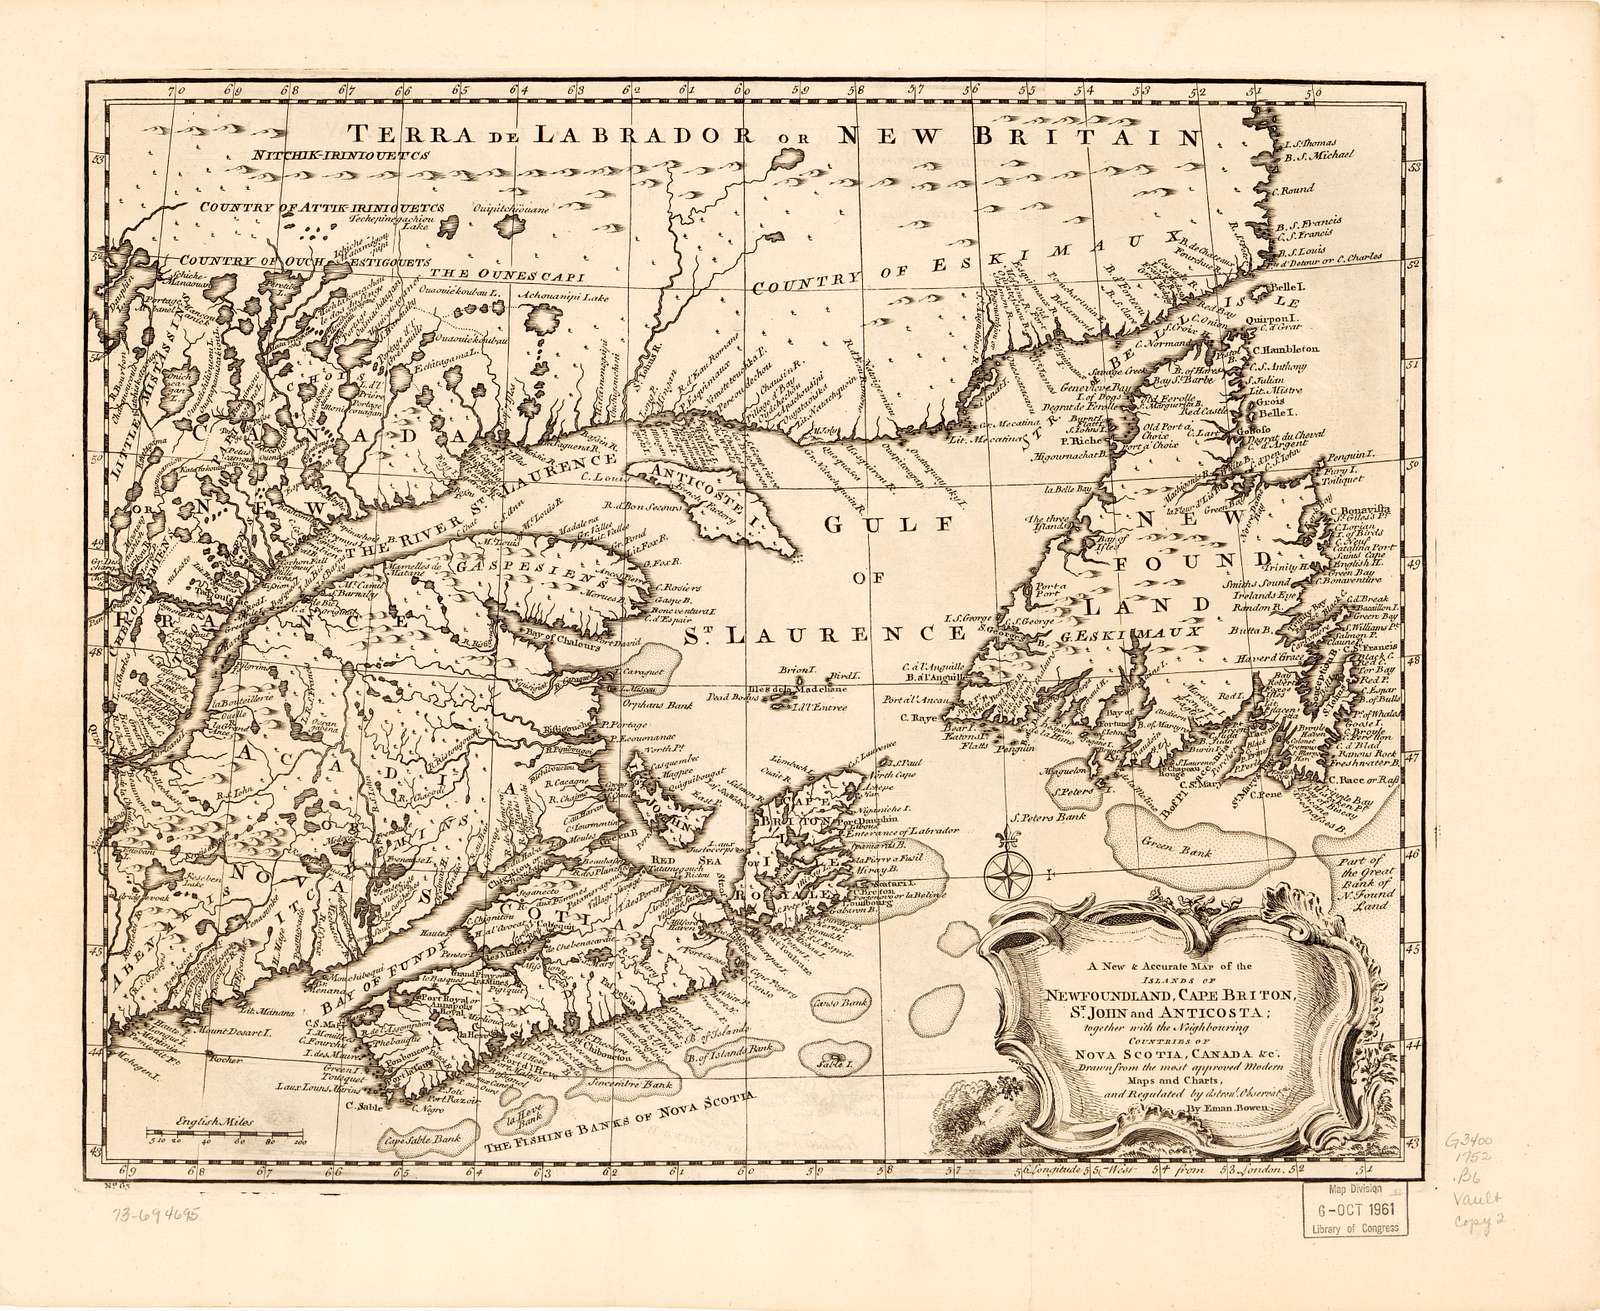 A new & accurate map of the islands of Newfoundland, Cape Breton, St. John and Anticosta; together with the neighbouring countries of Nova Scotia, Canada, &c